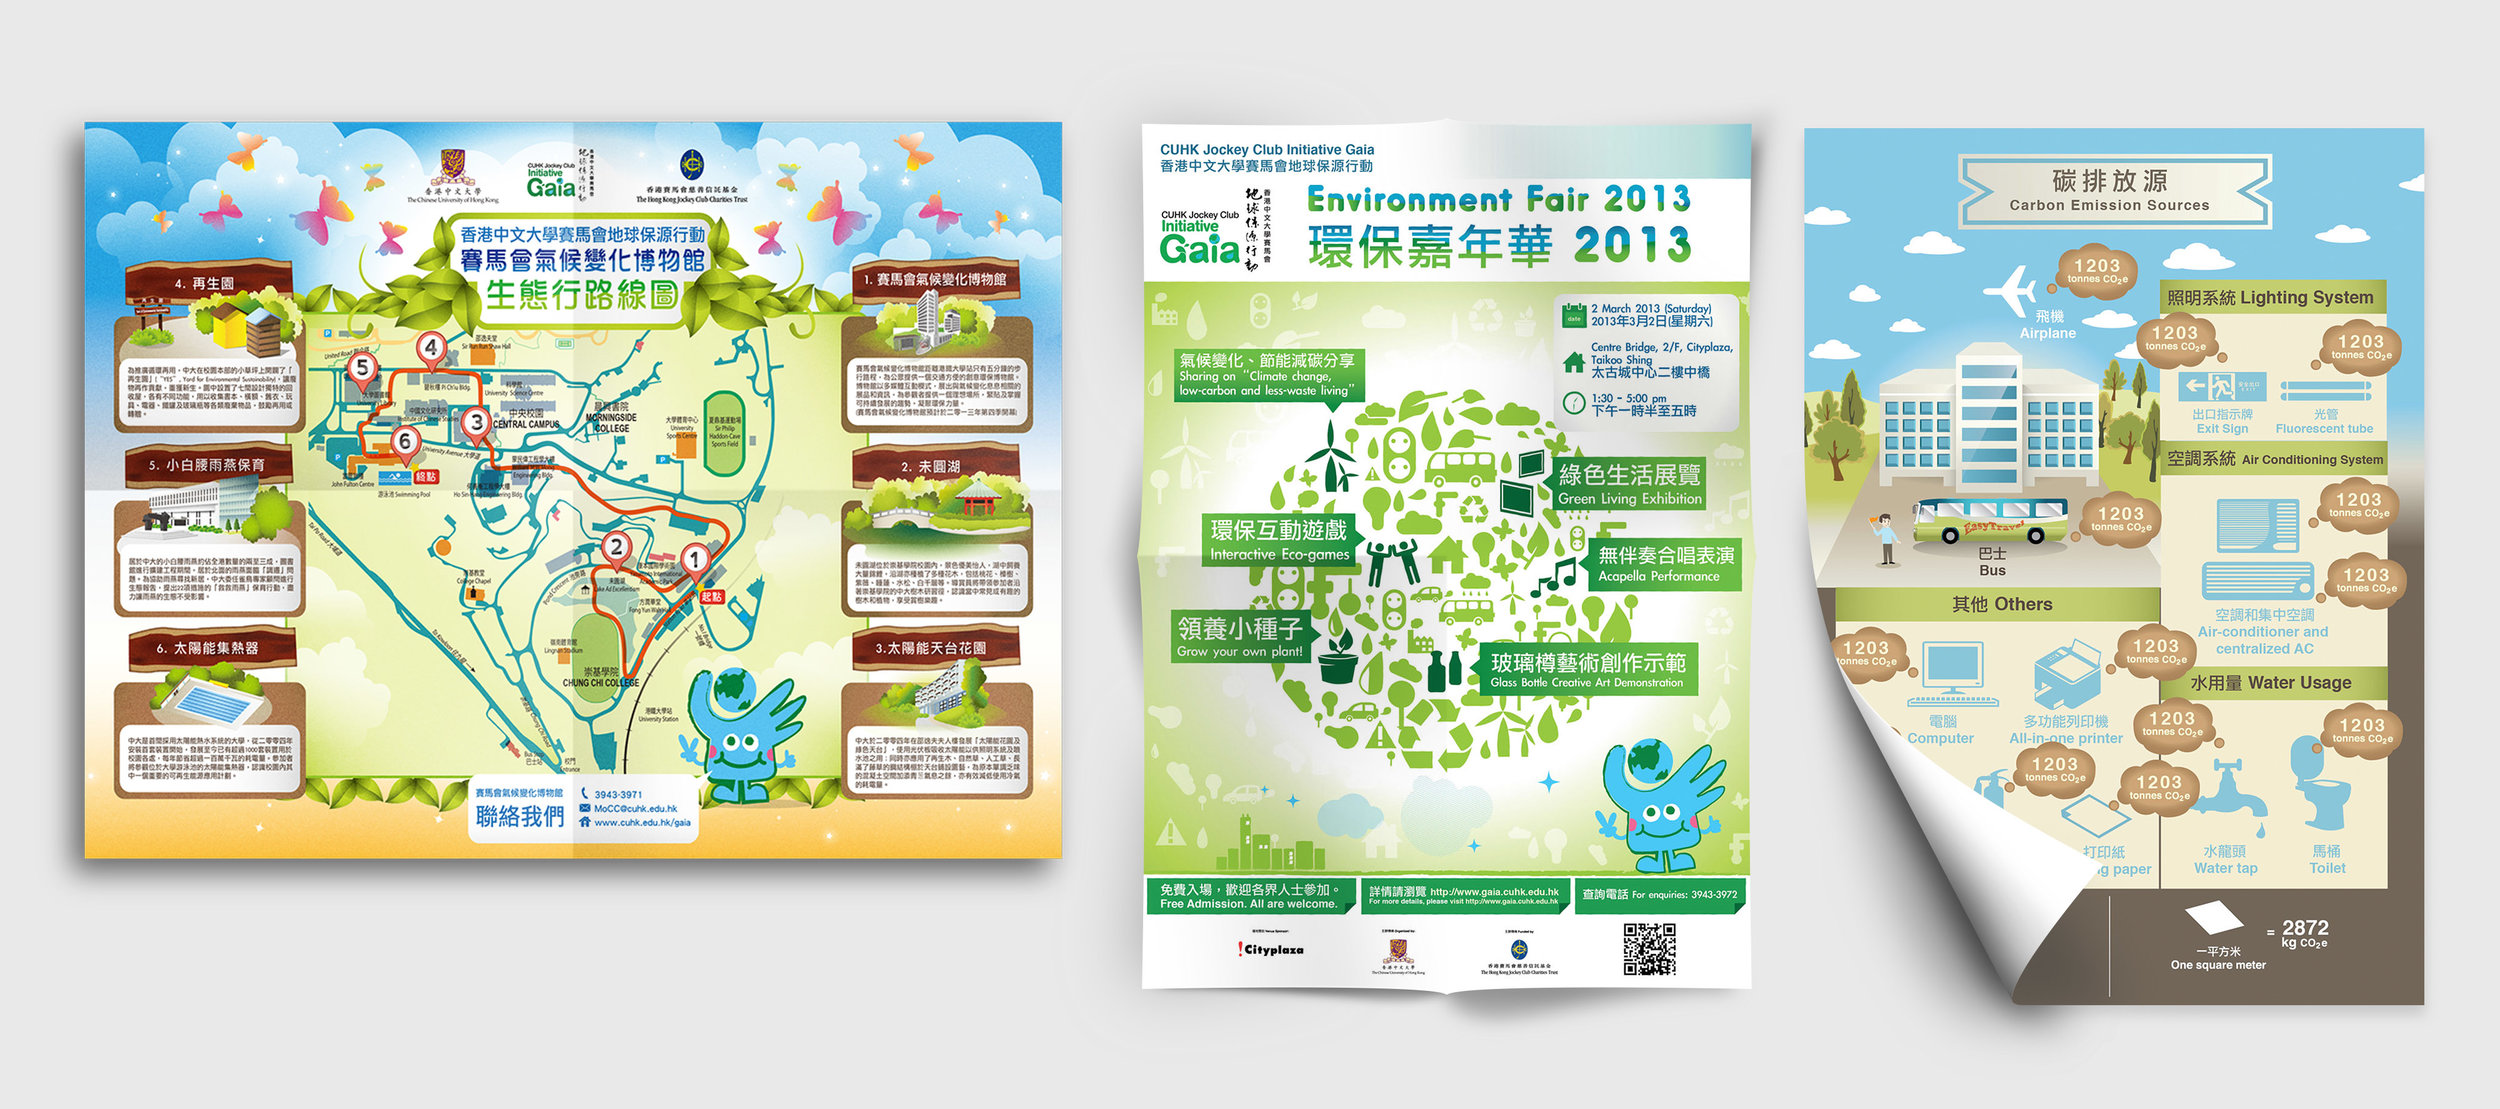 Infographic design for CUHK